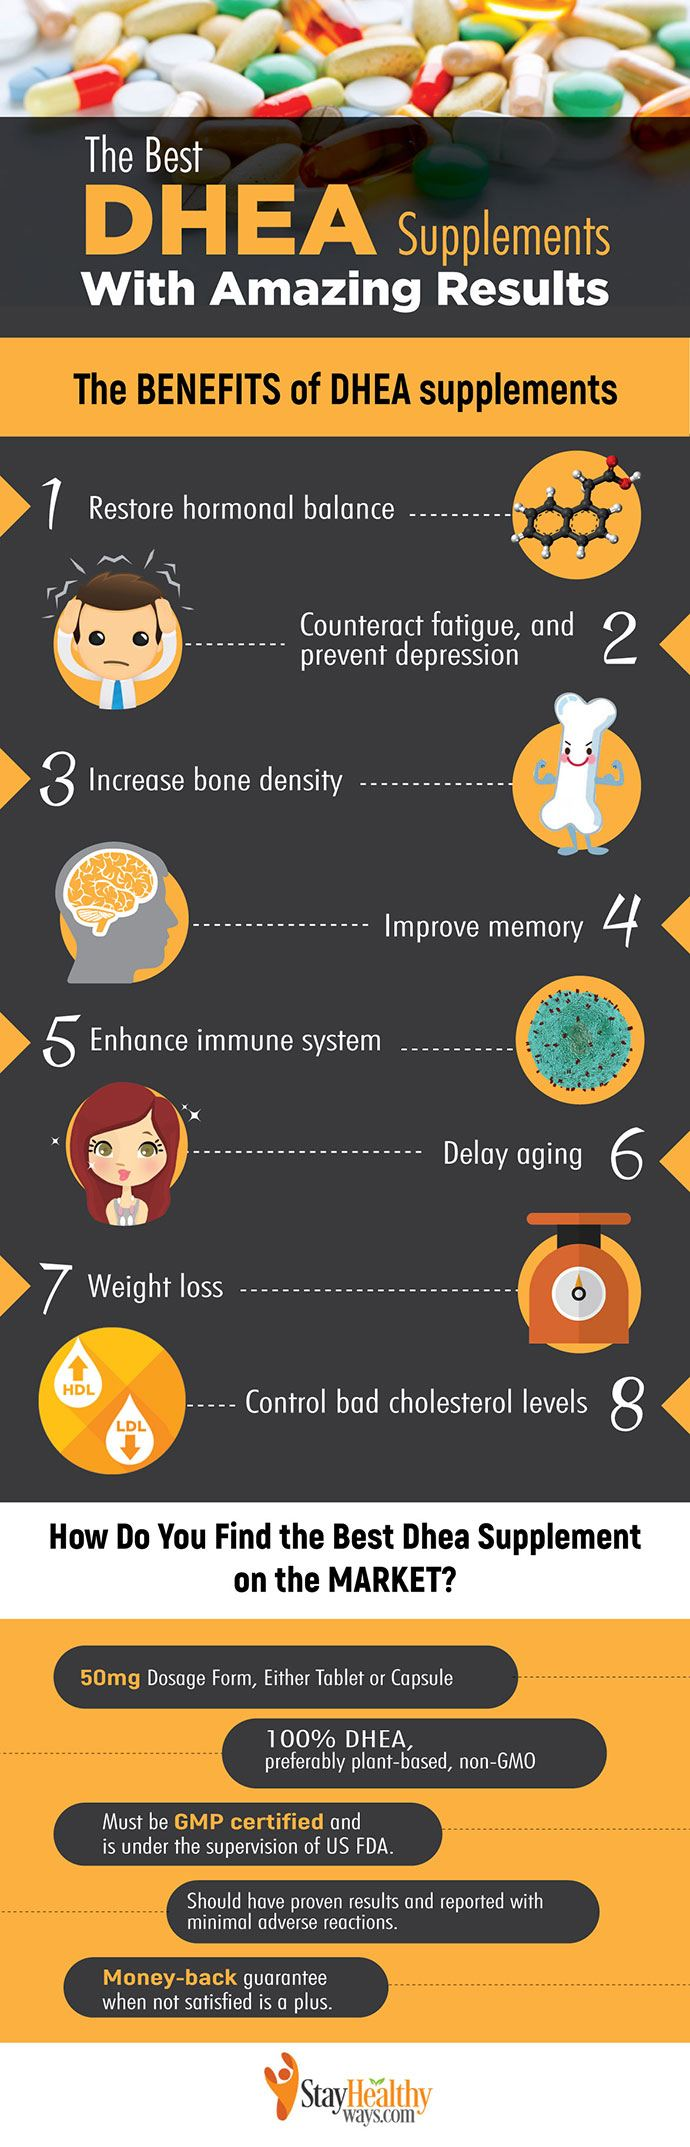 best dhea supplements infographic